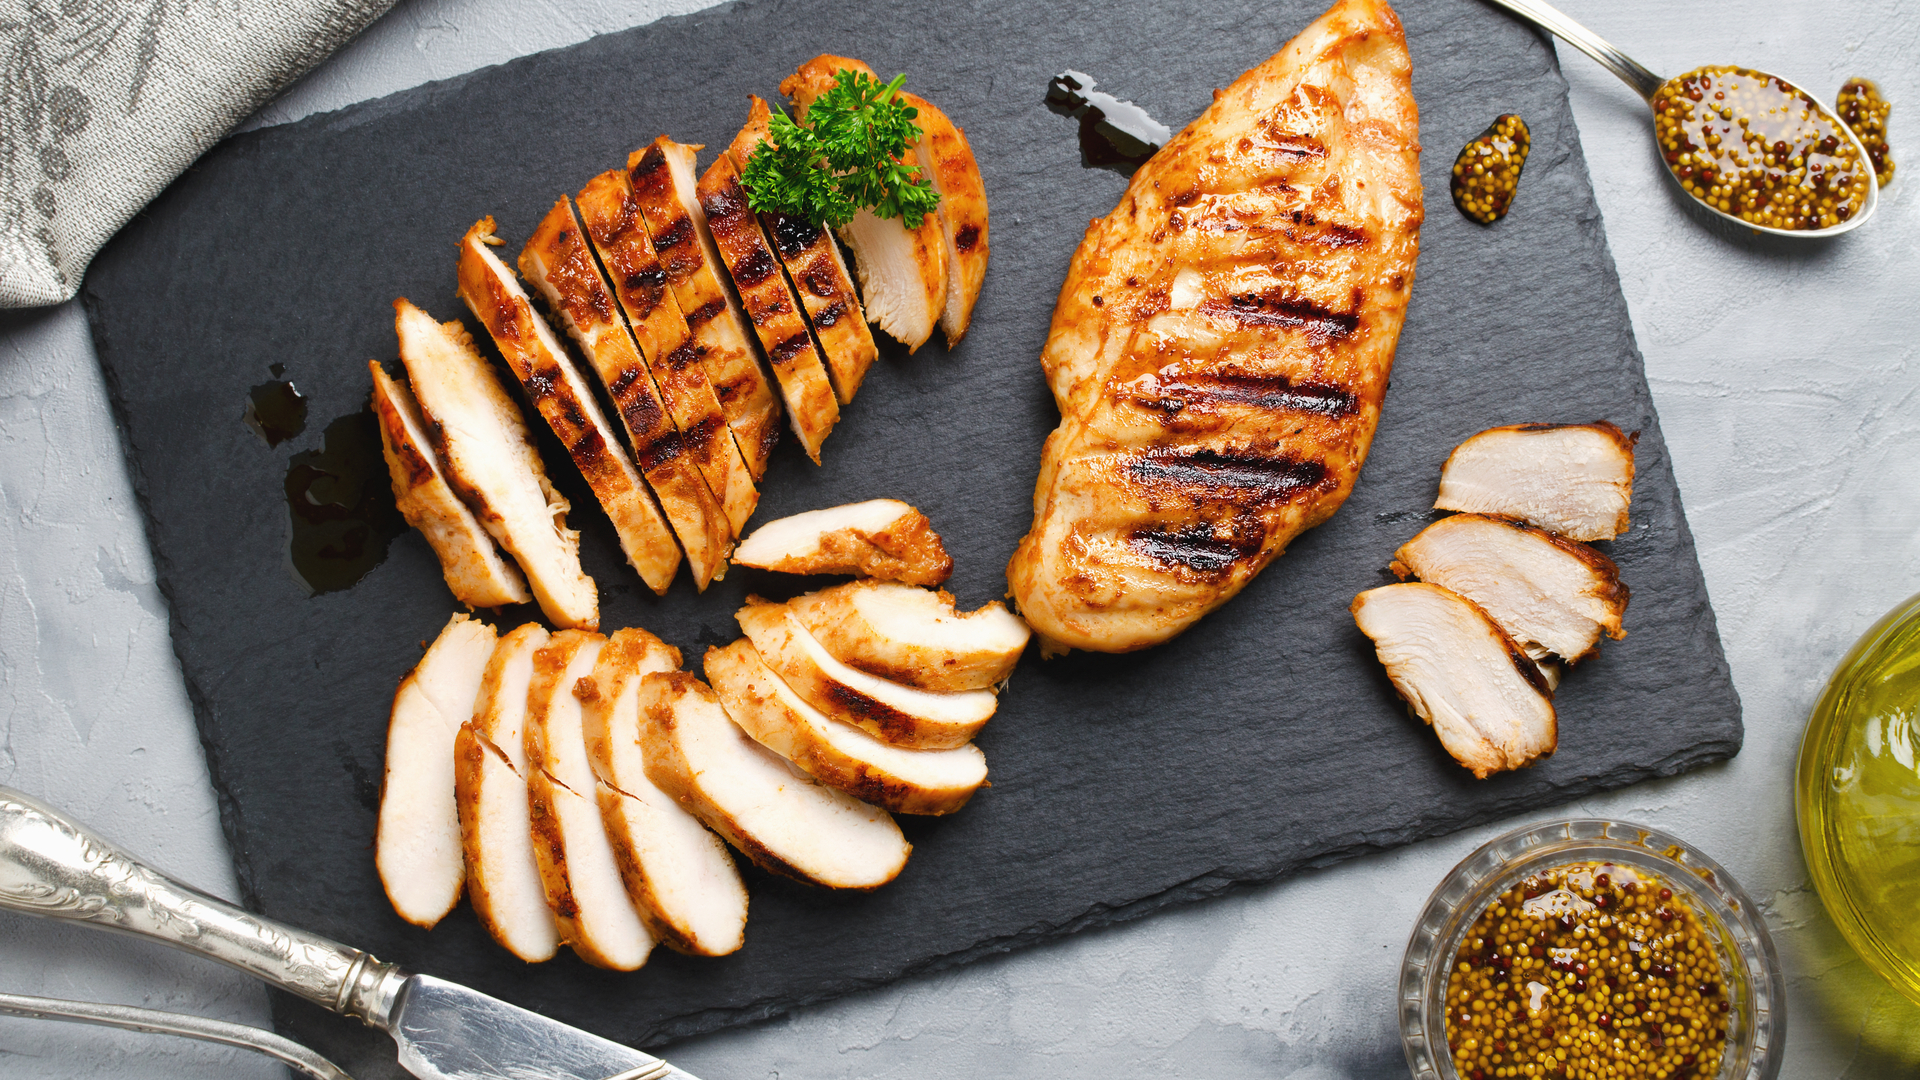 Grilled chicken cut into slices on a slate